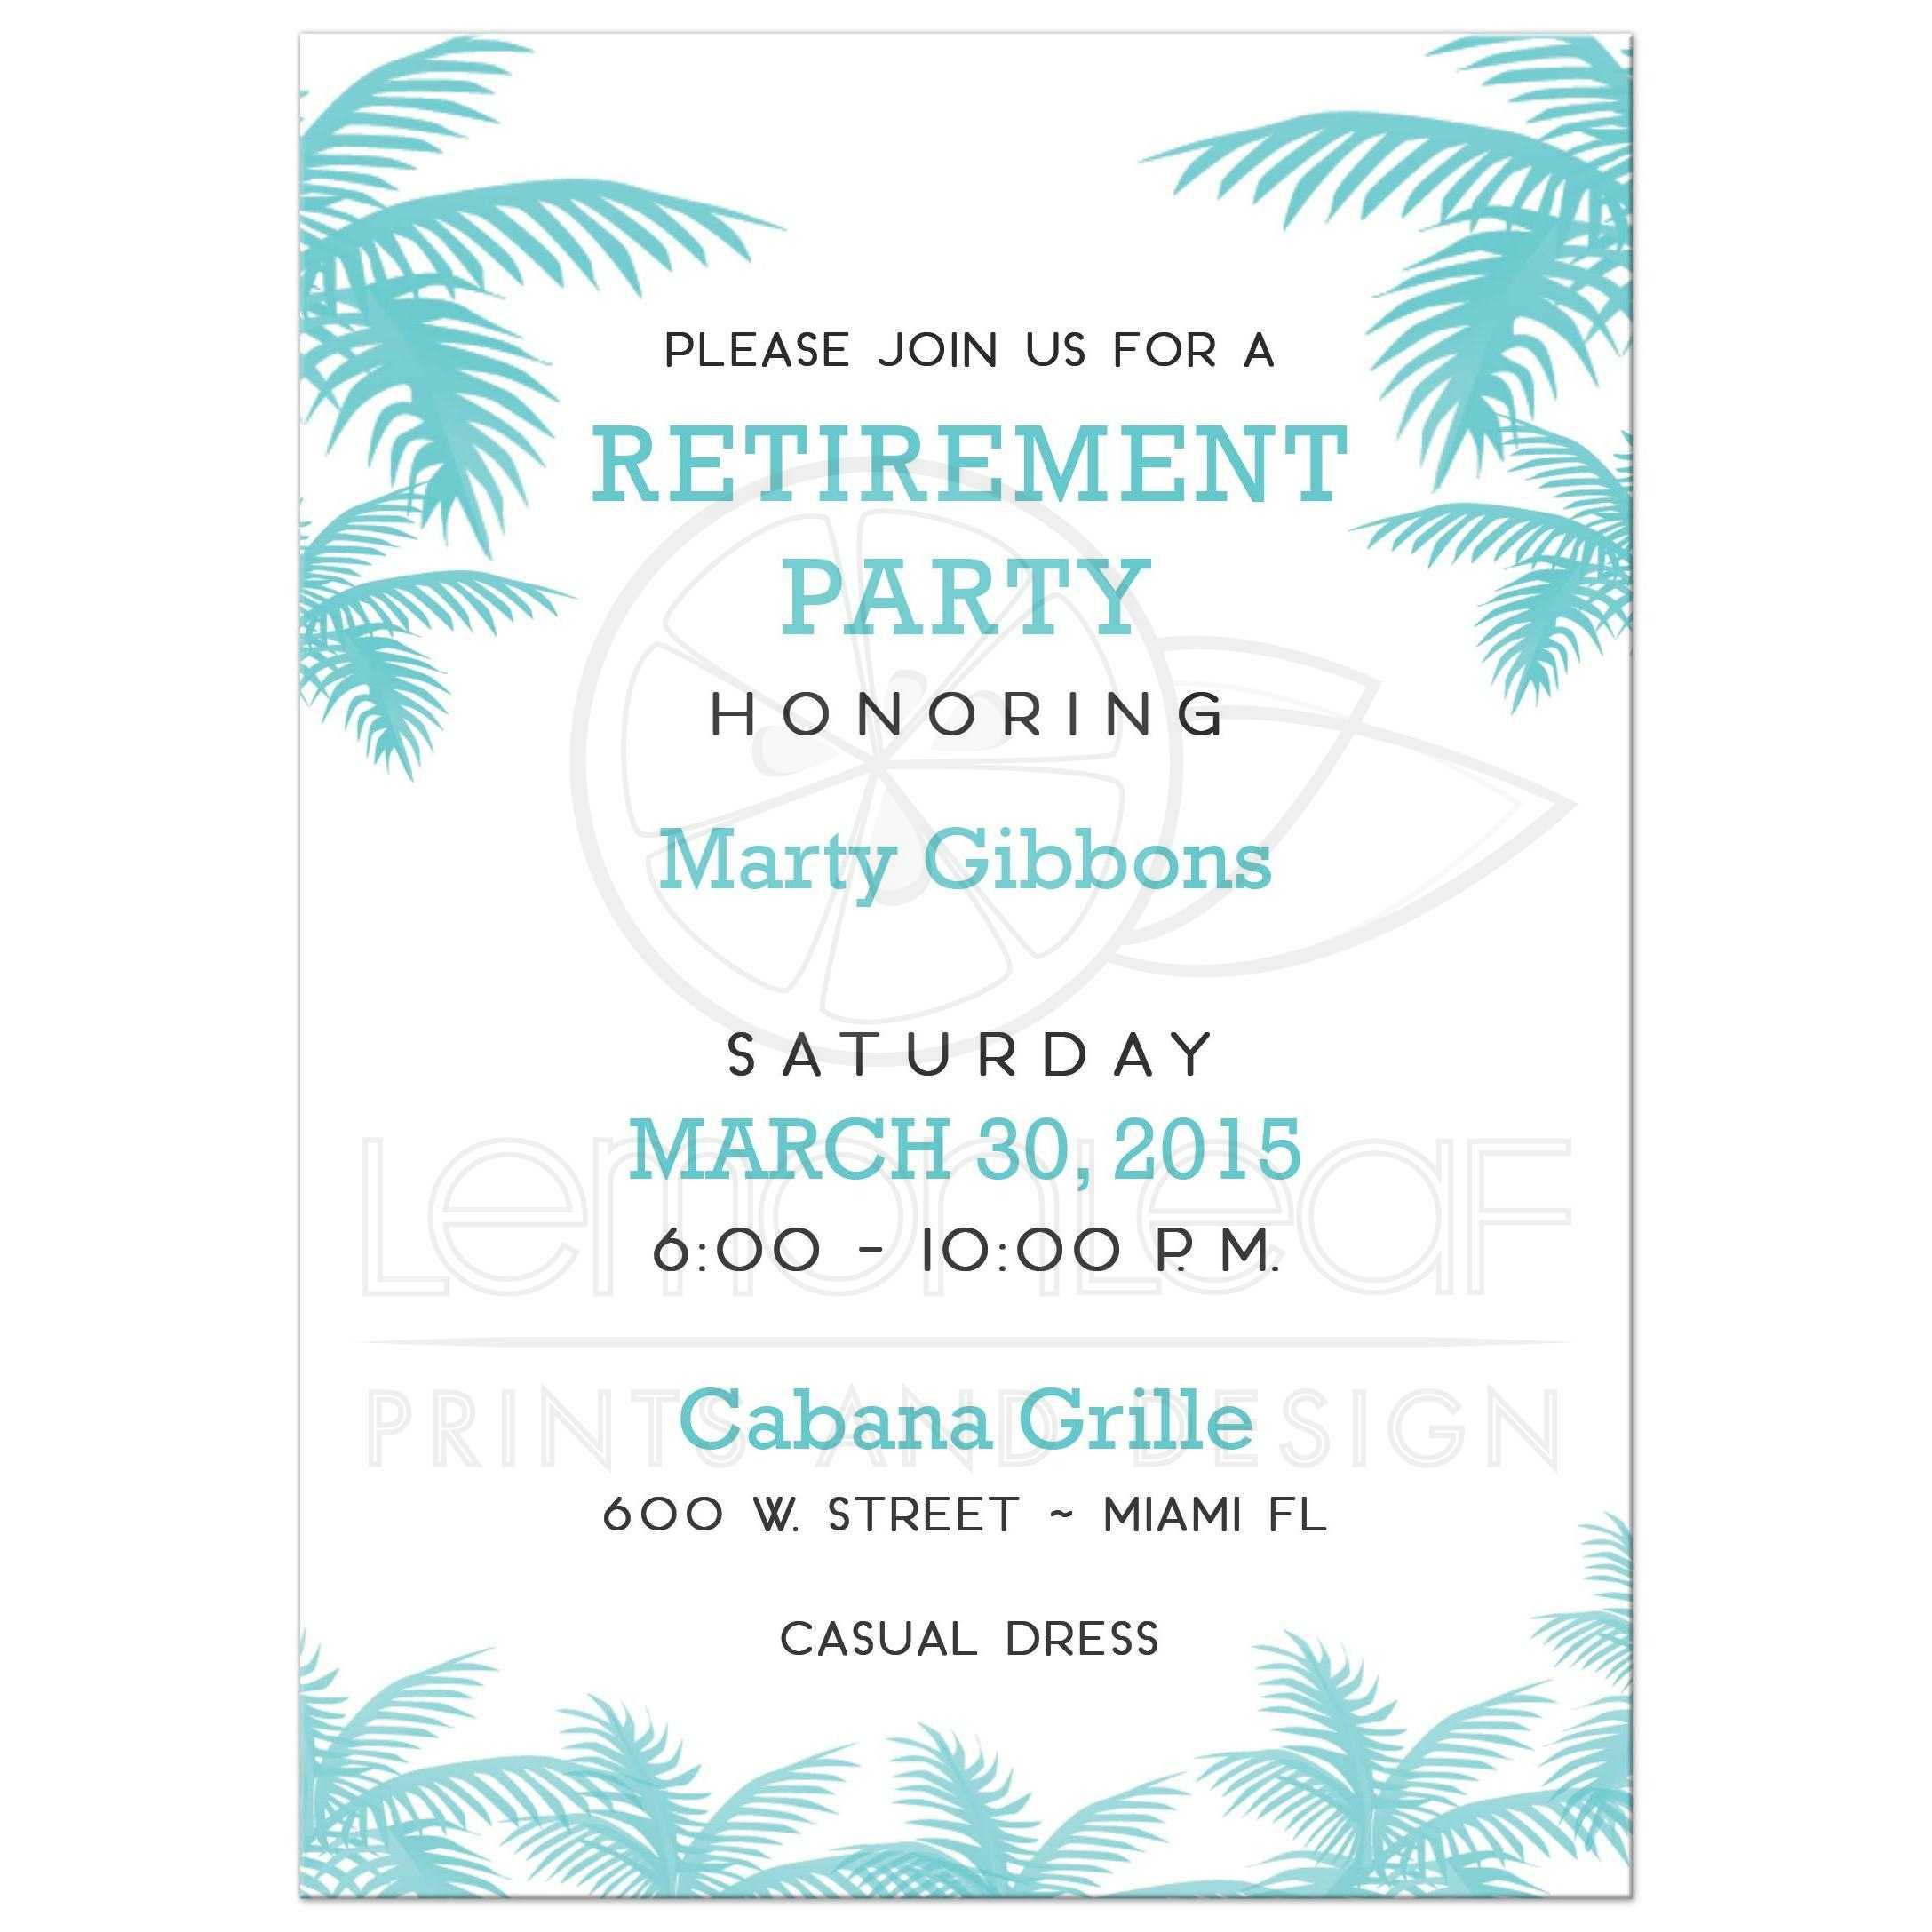 Fullsize Of Retirement Party Invitations